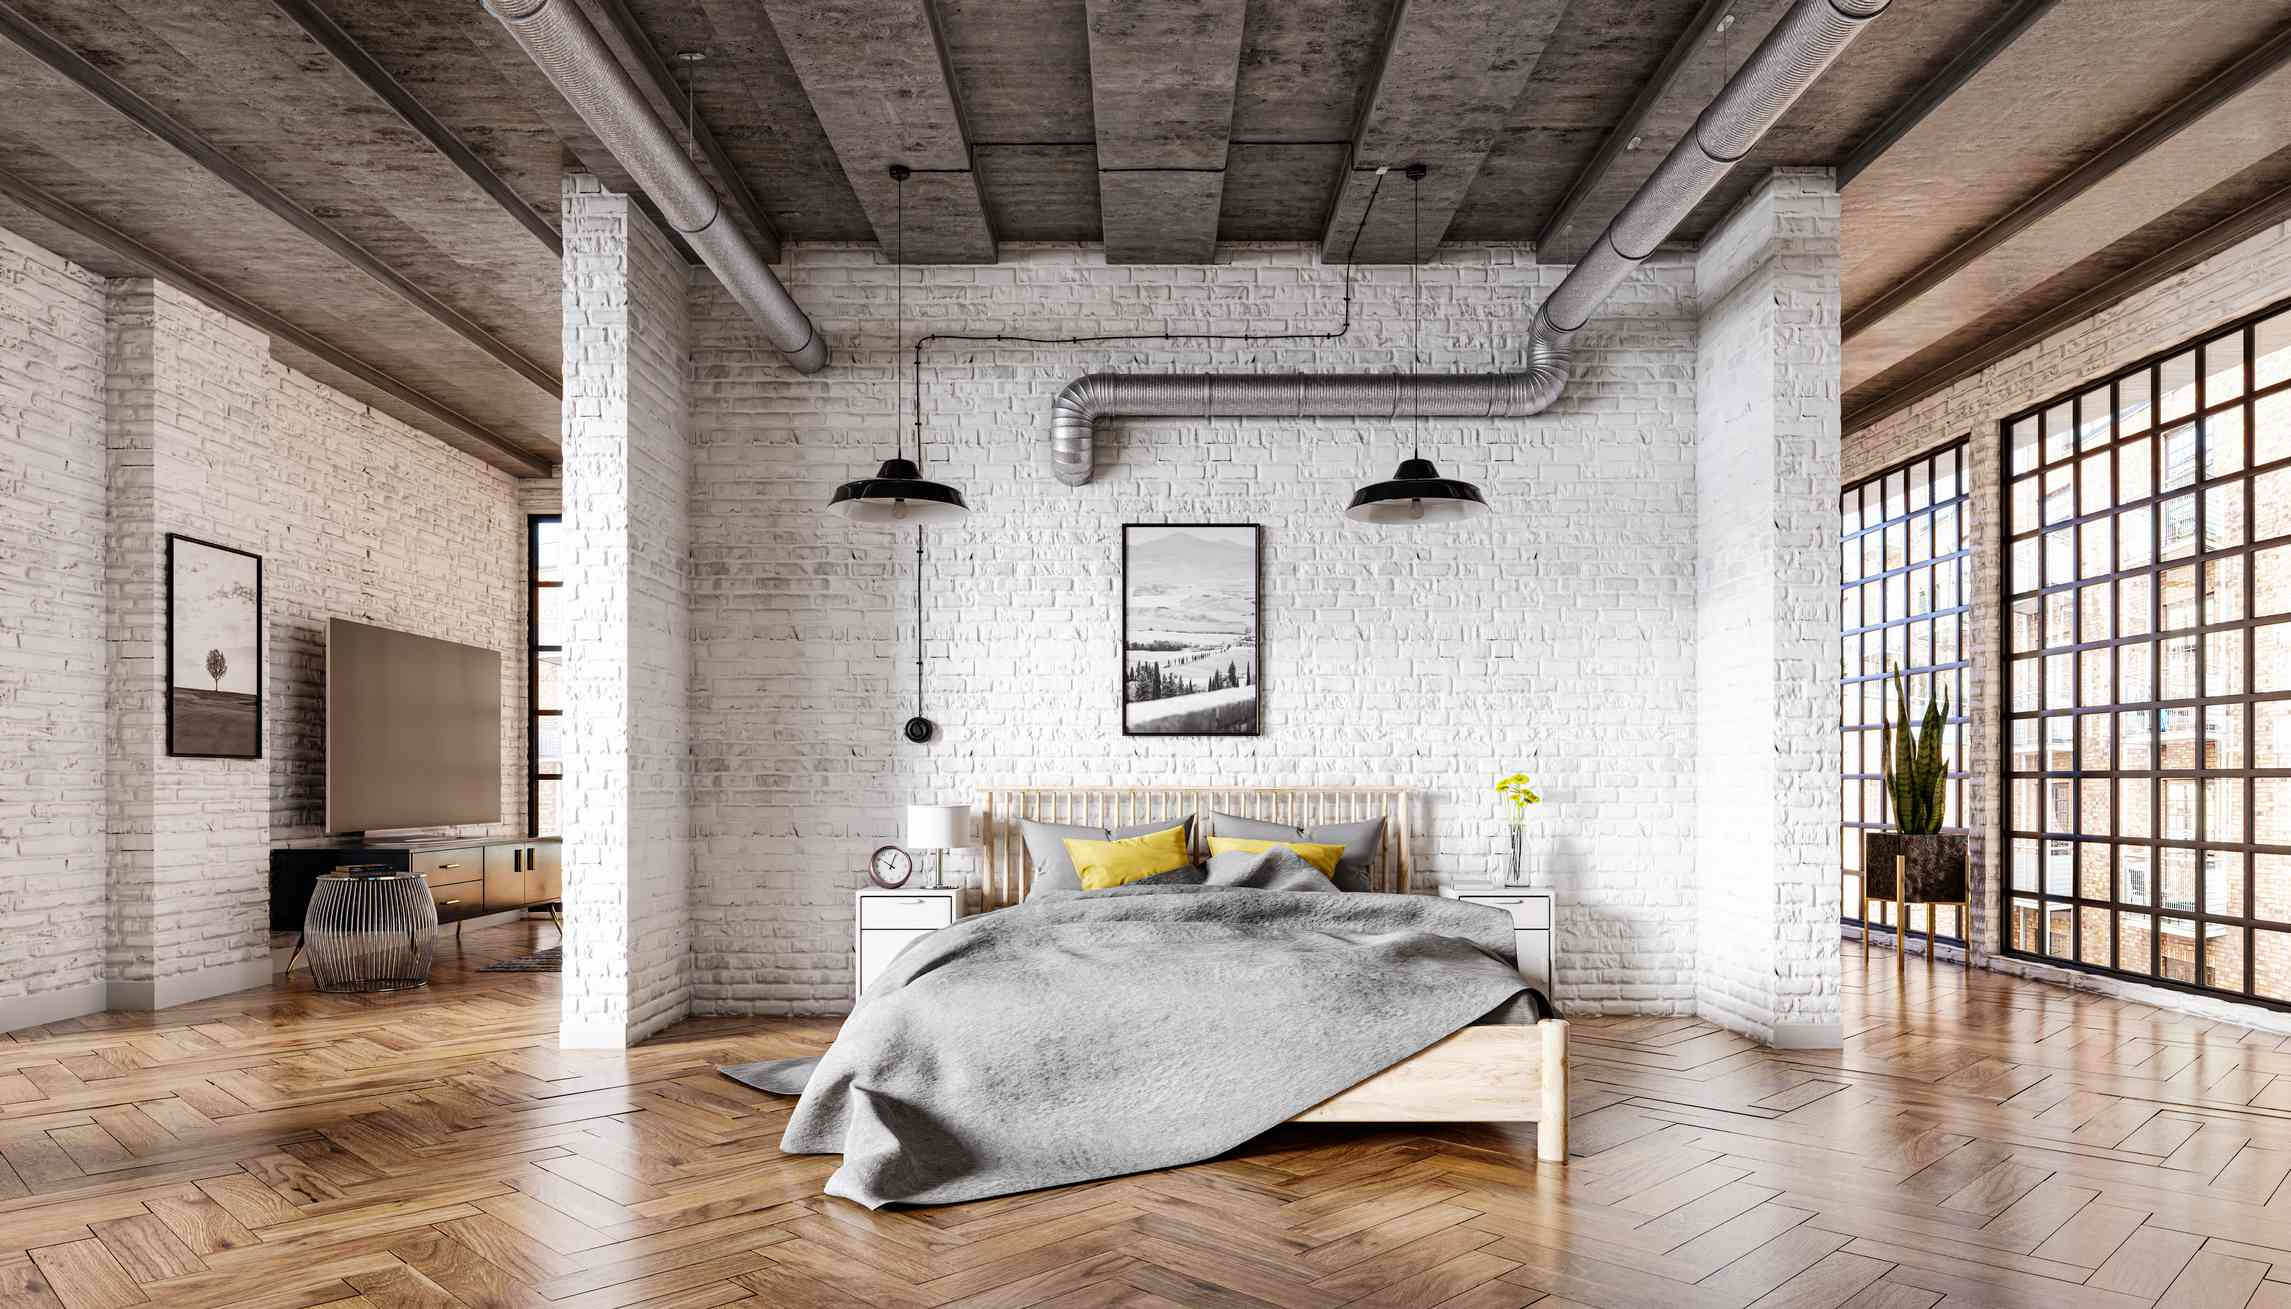 Bedroom in a loft interior with a brick wall, parquet floor and a concrete ceiling